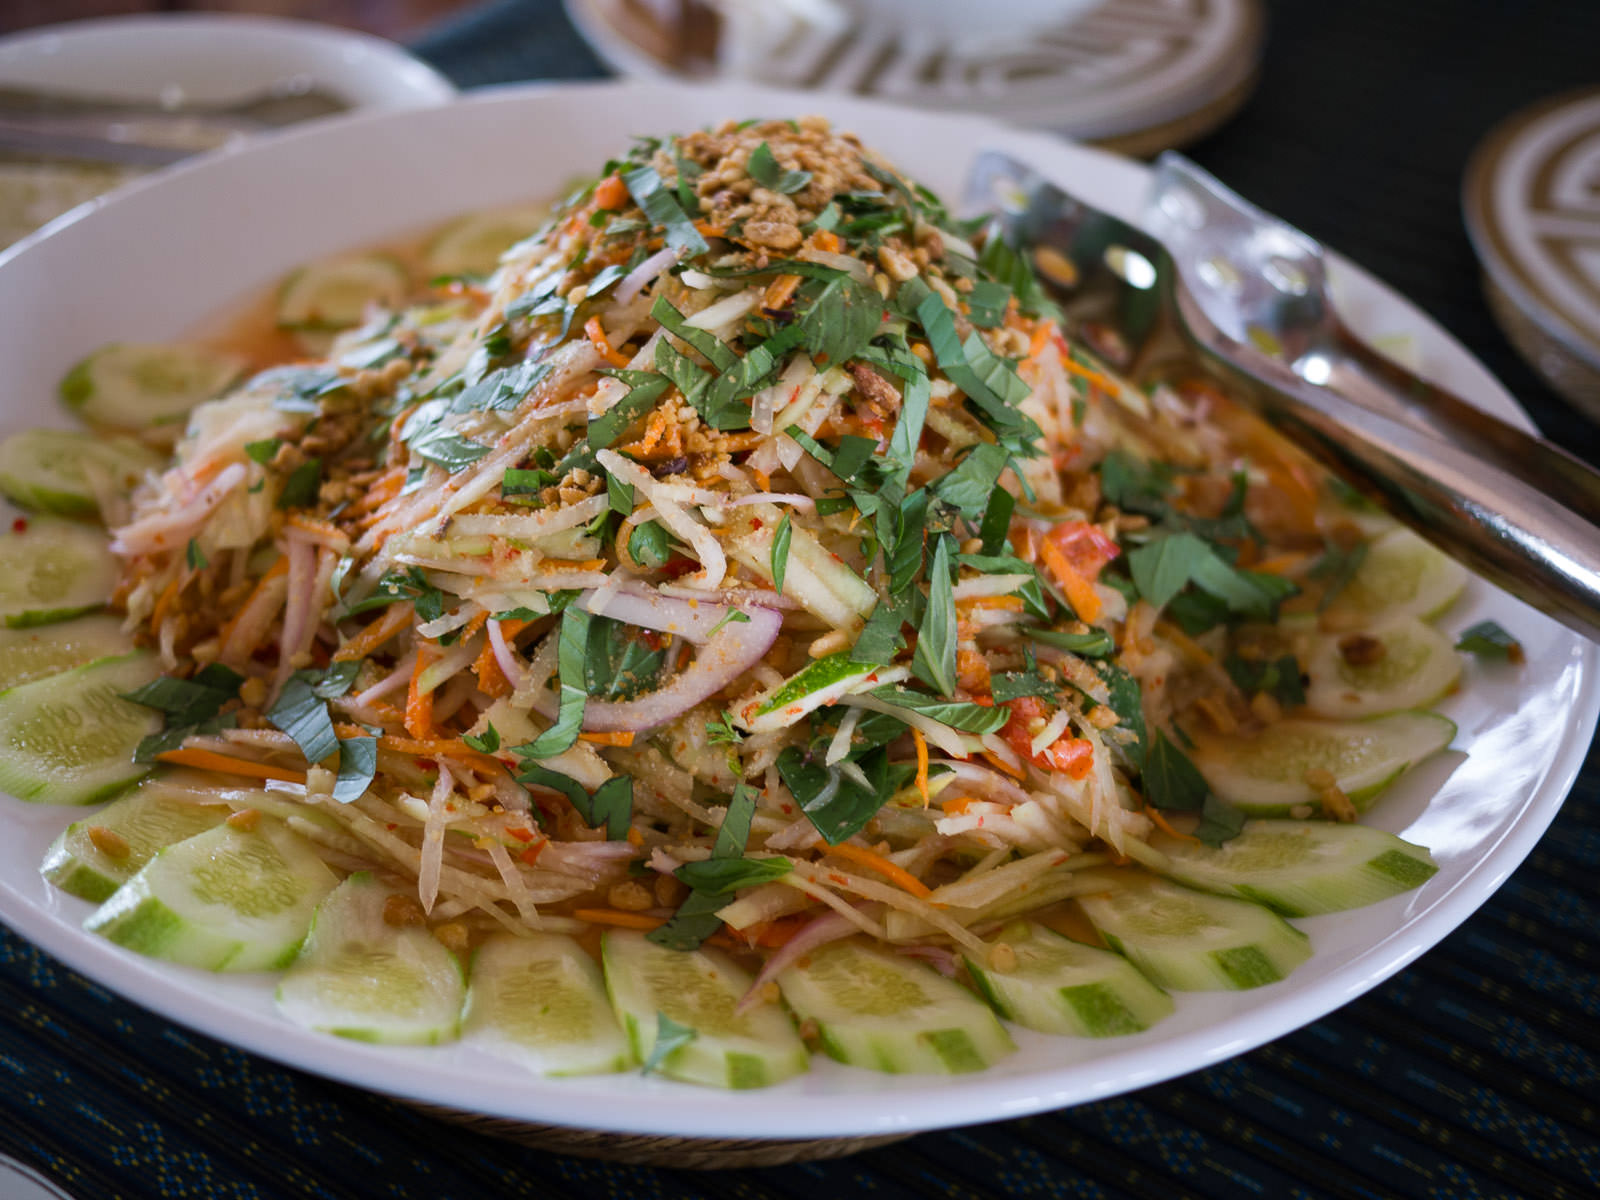 Green papaya salad with dried shrimps